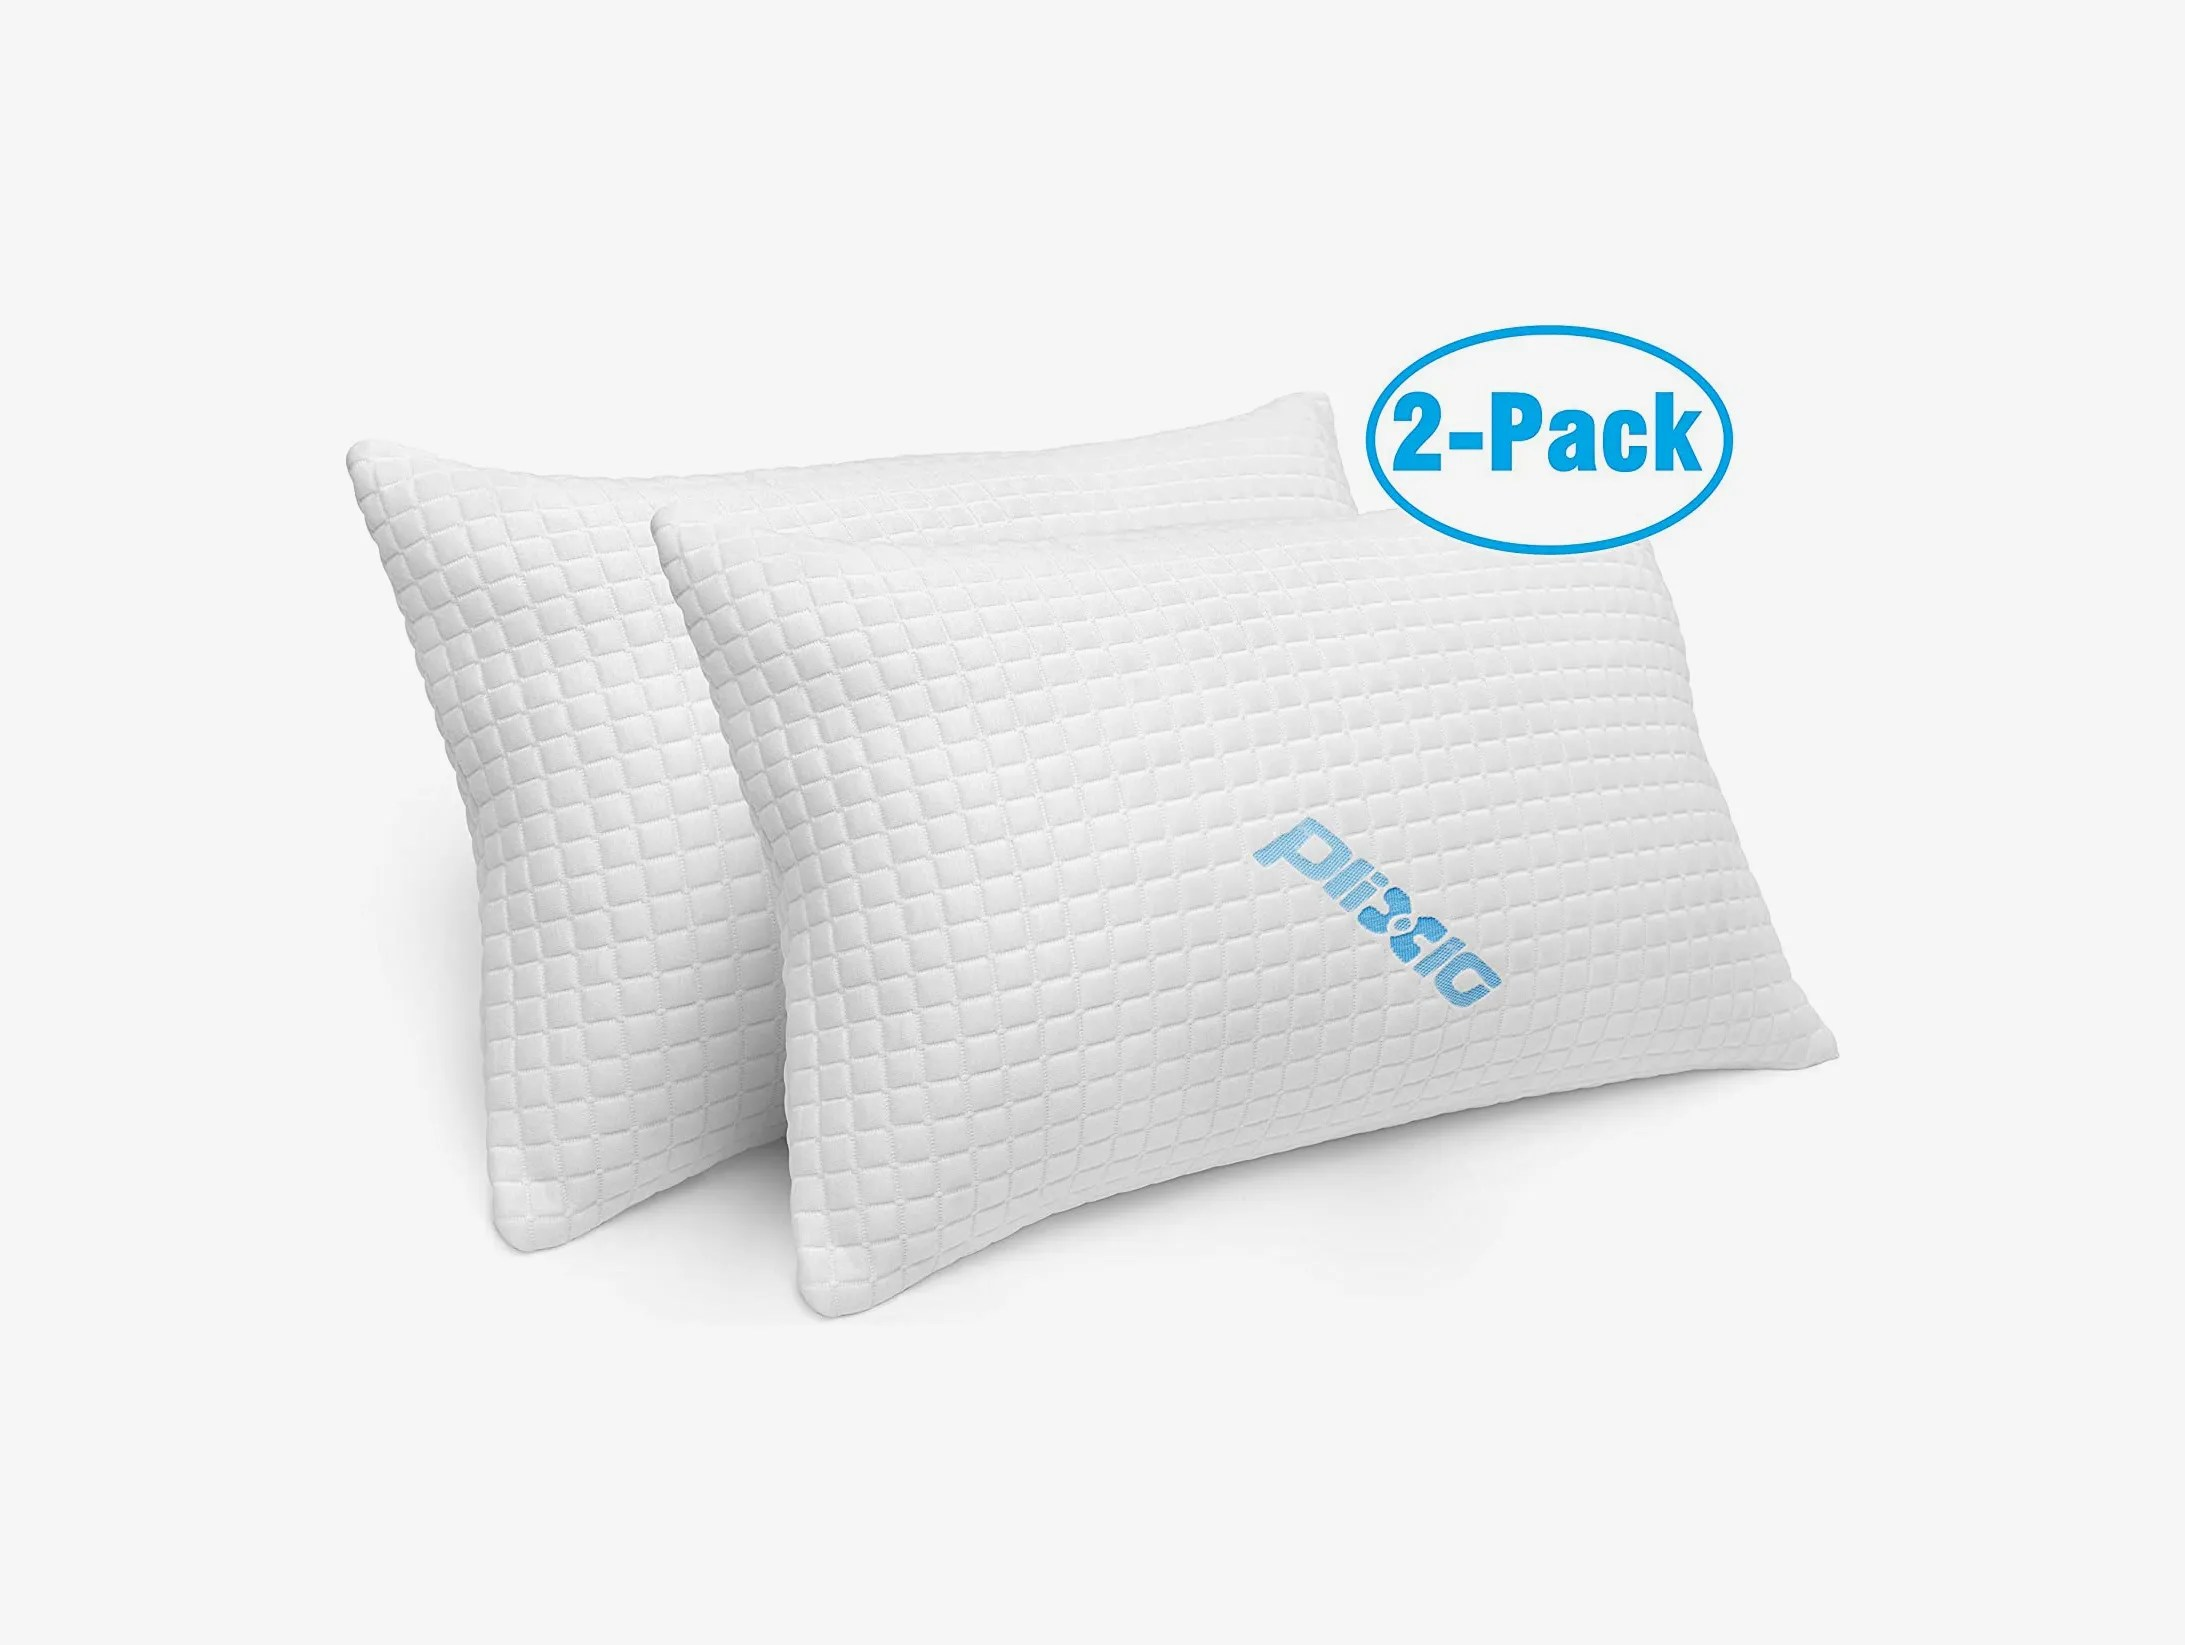 https nymag com strategist article best memory foam pillows on amazon html